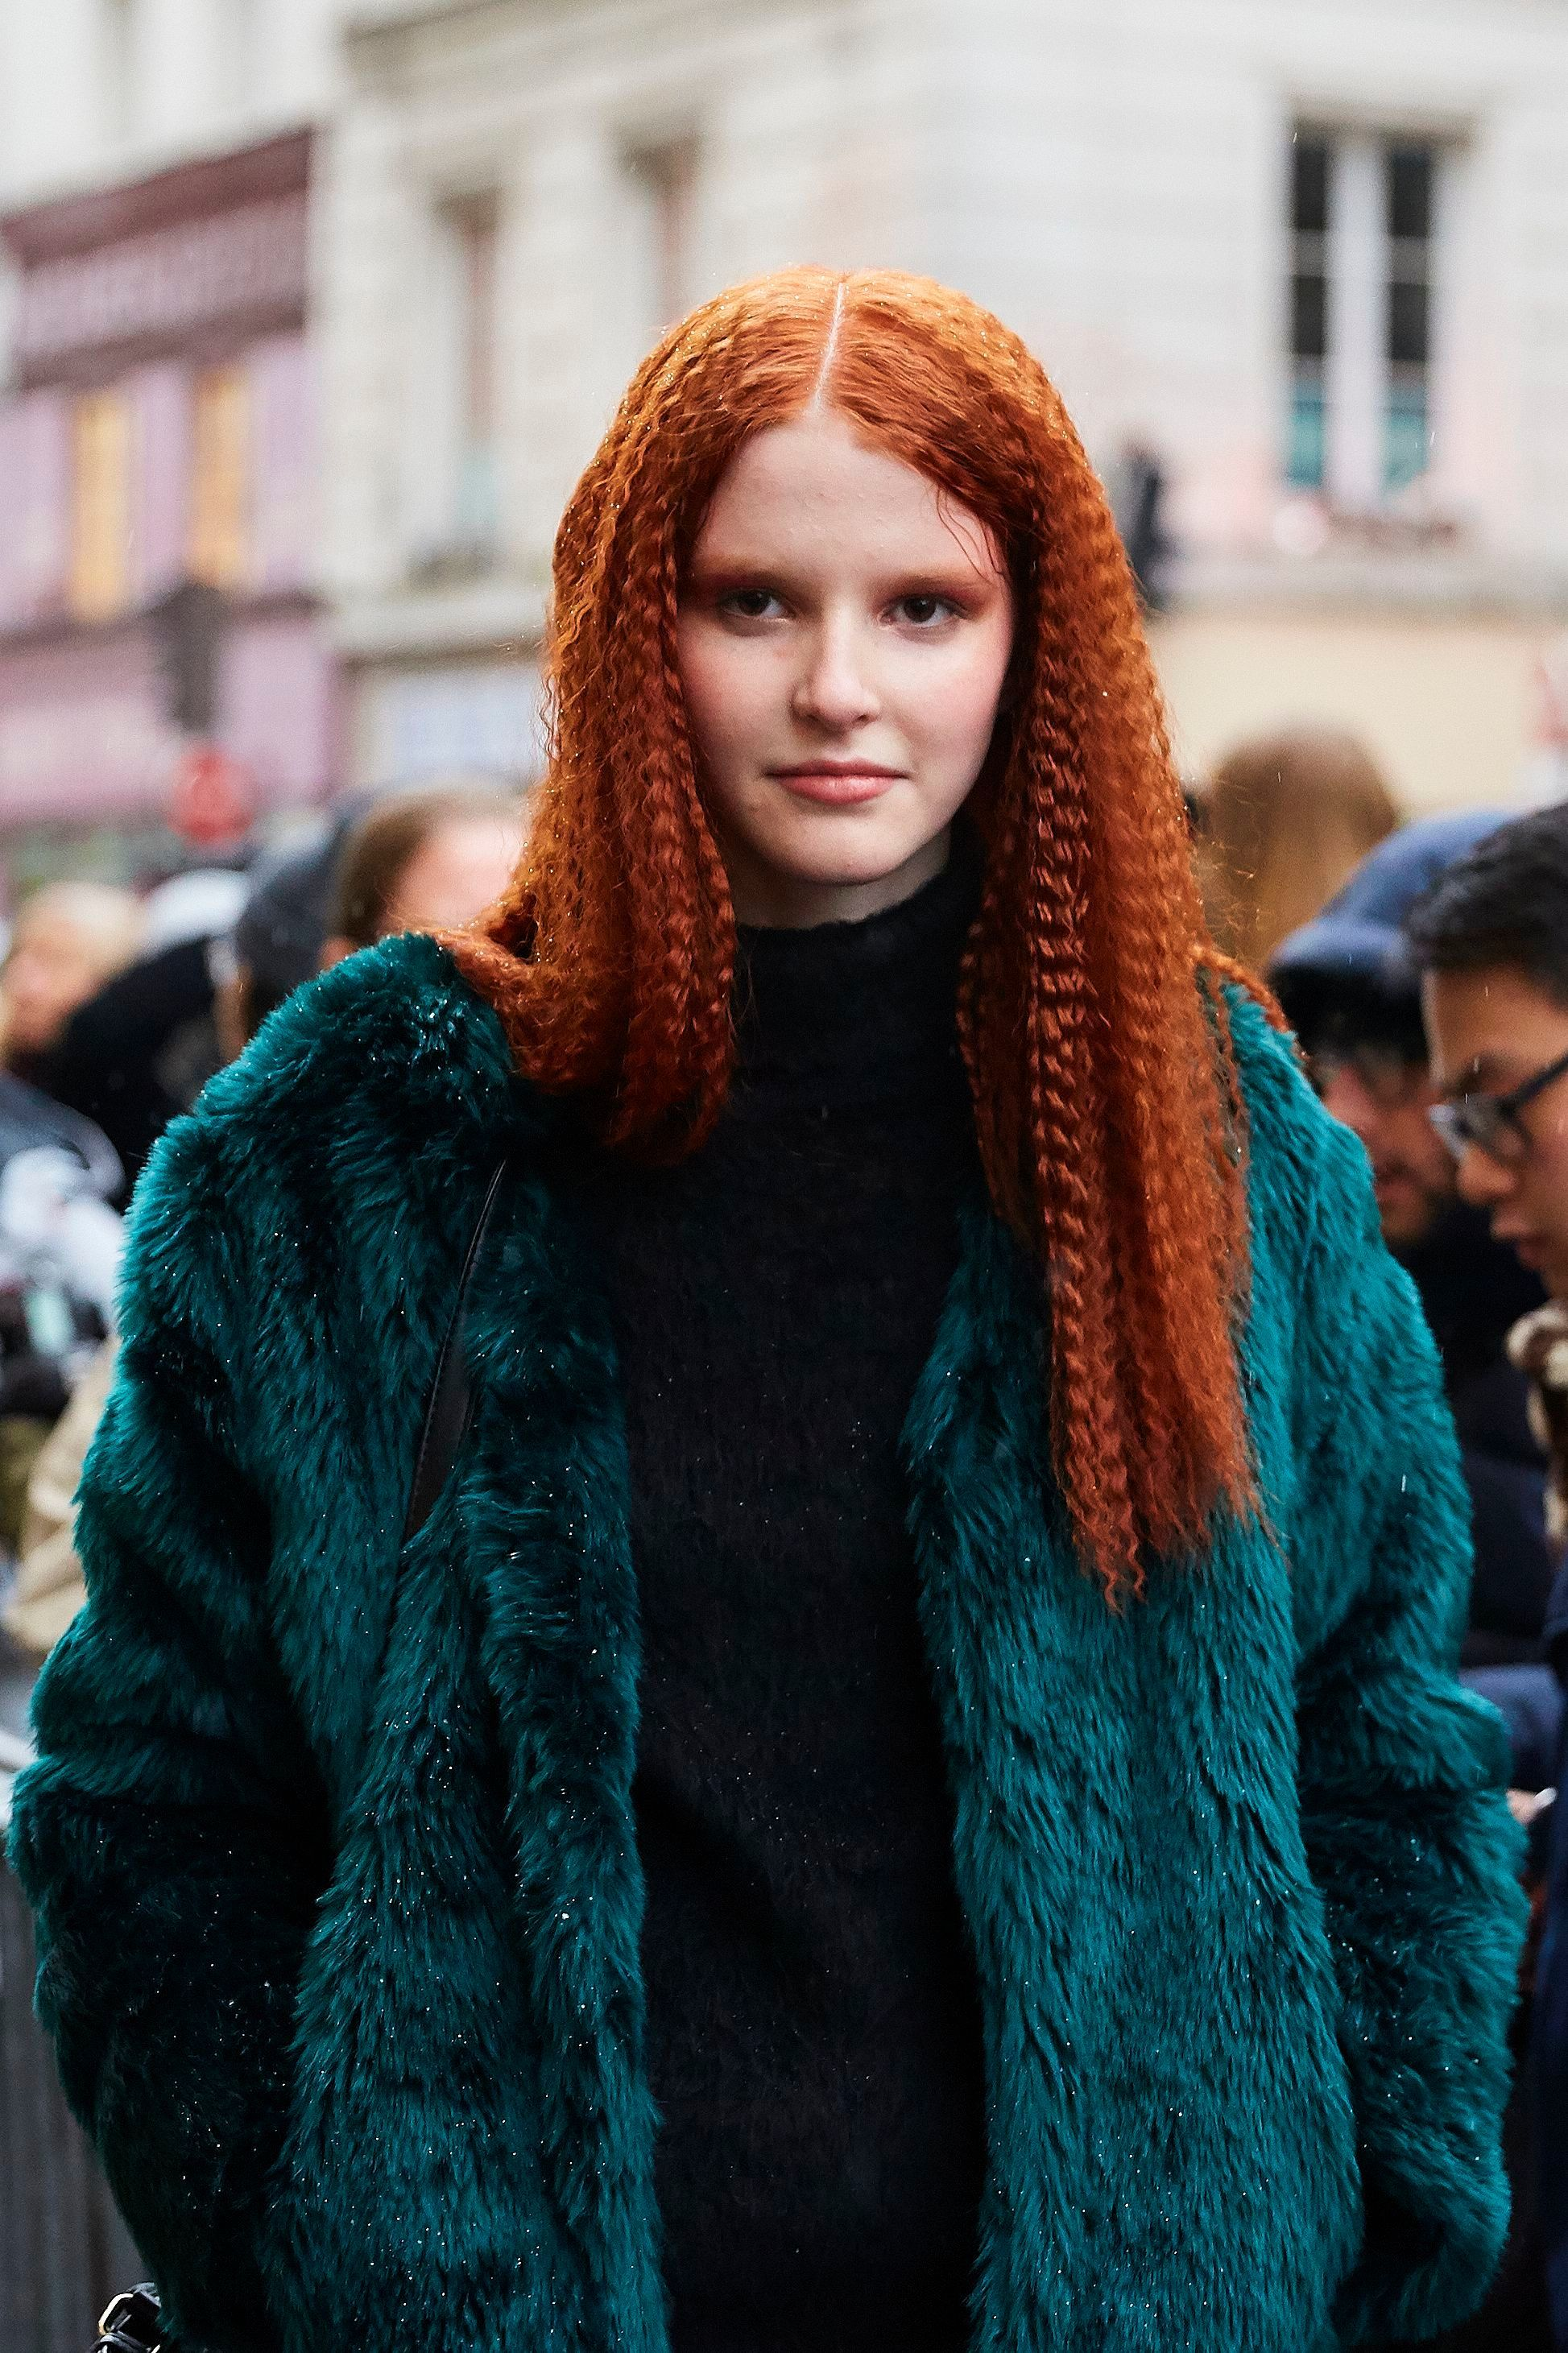 Crimped hair: Street style shot of a redhead woman with long crimped hair, wearing a teal fur coat